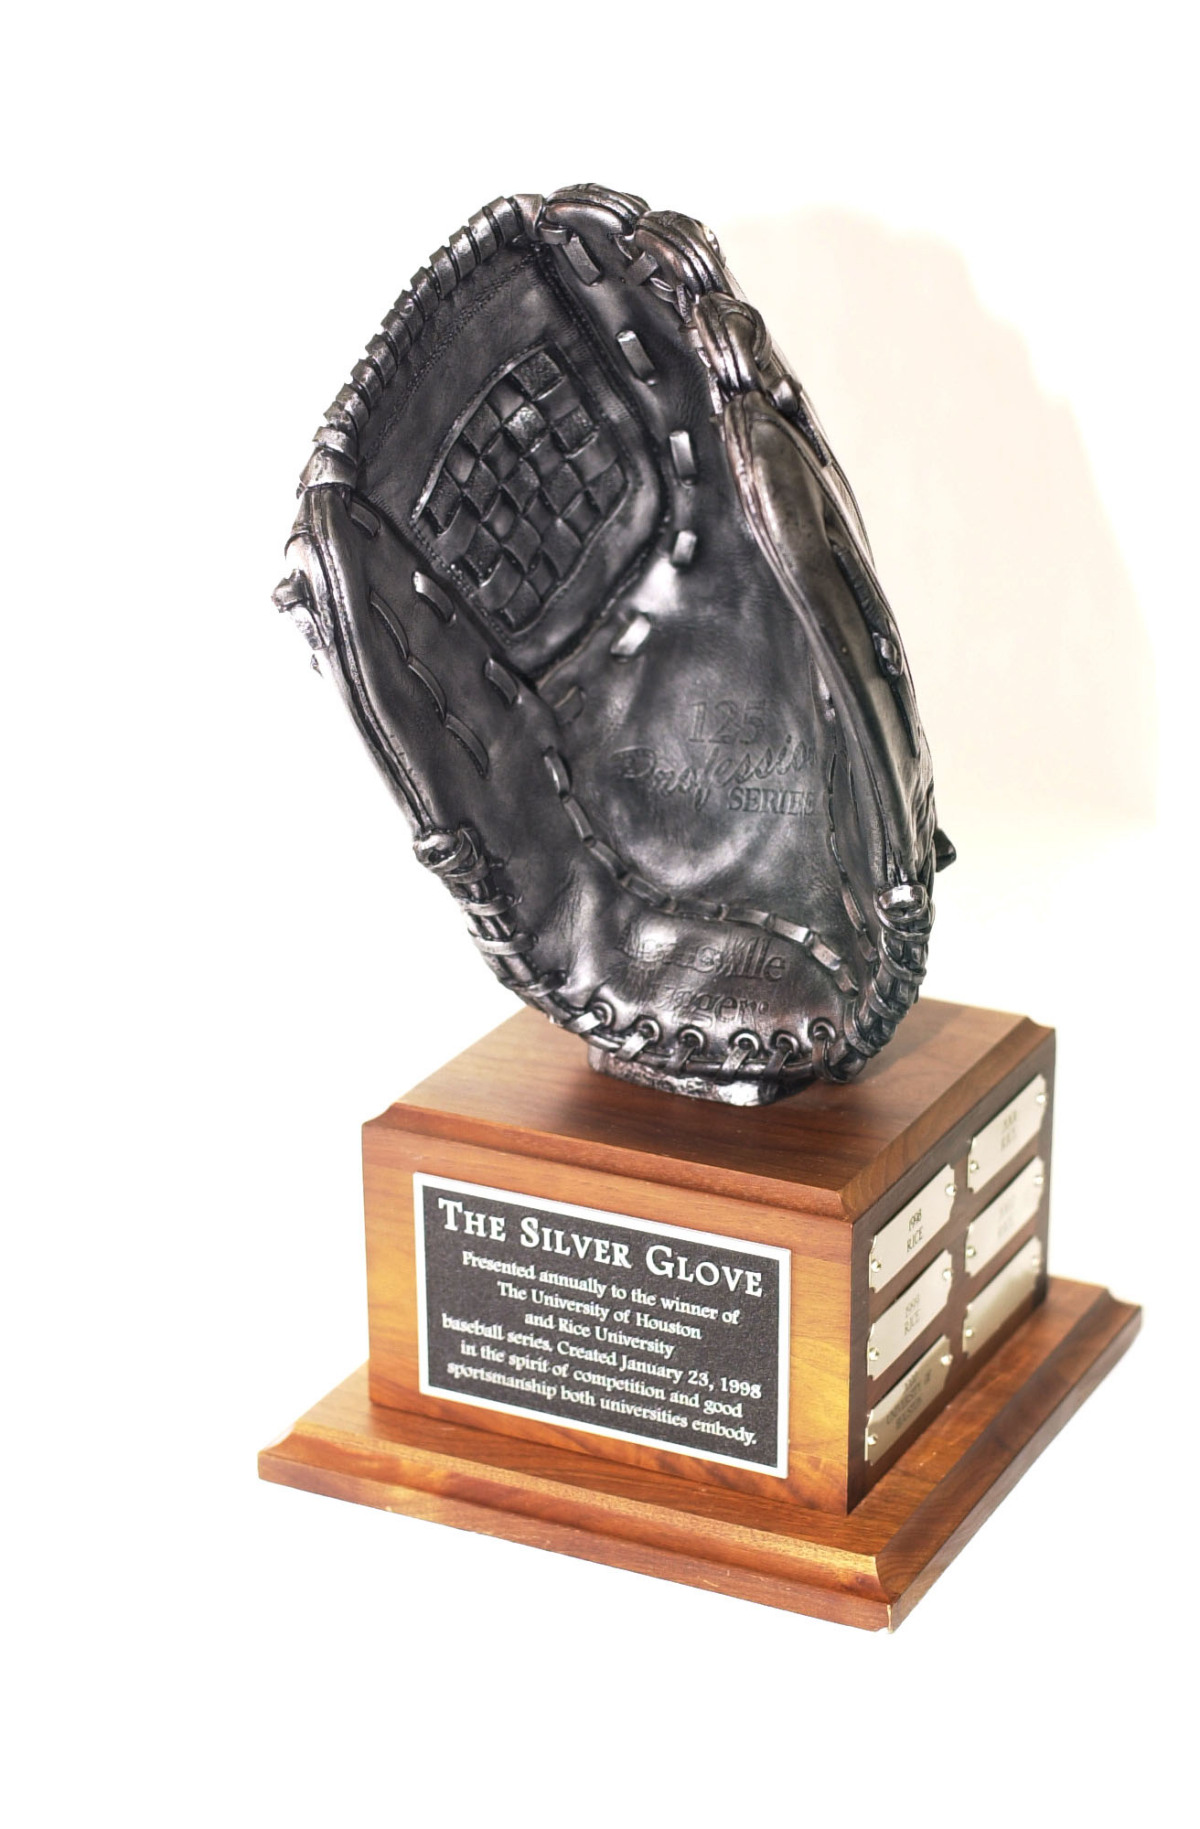 <b>This weekend the eyes are on the Silver Glove prize.</b>